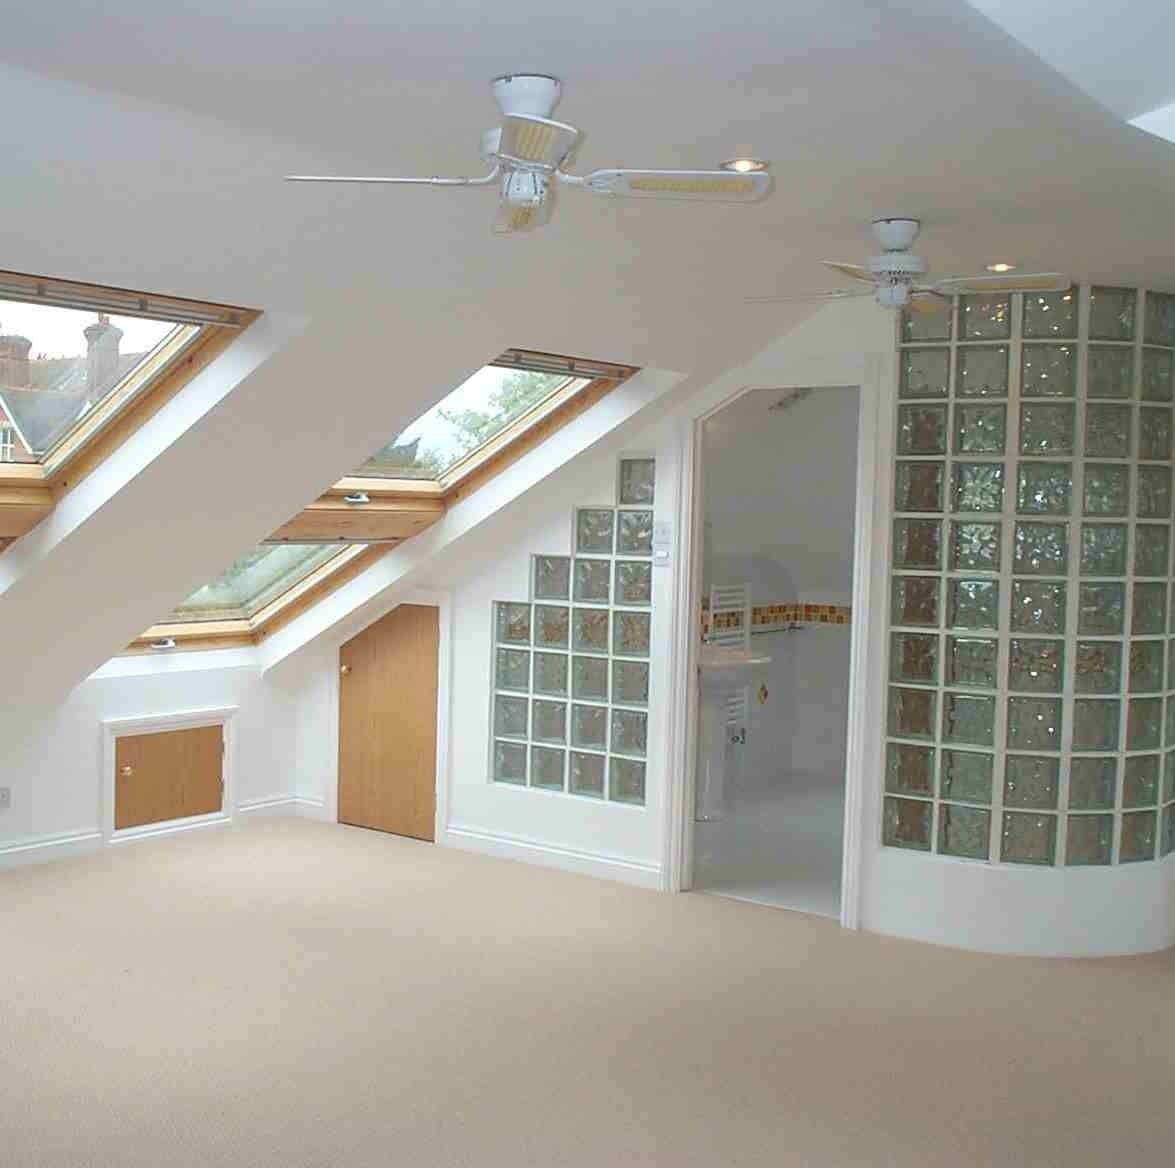 Attic Room With Privacy Glass Dividers Loft Conversion Bedroom